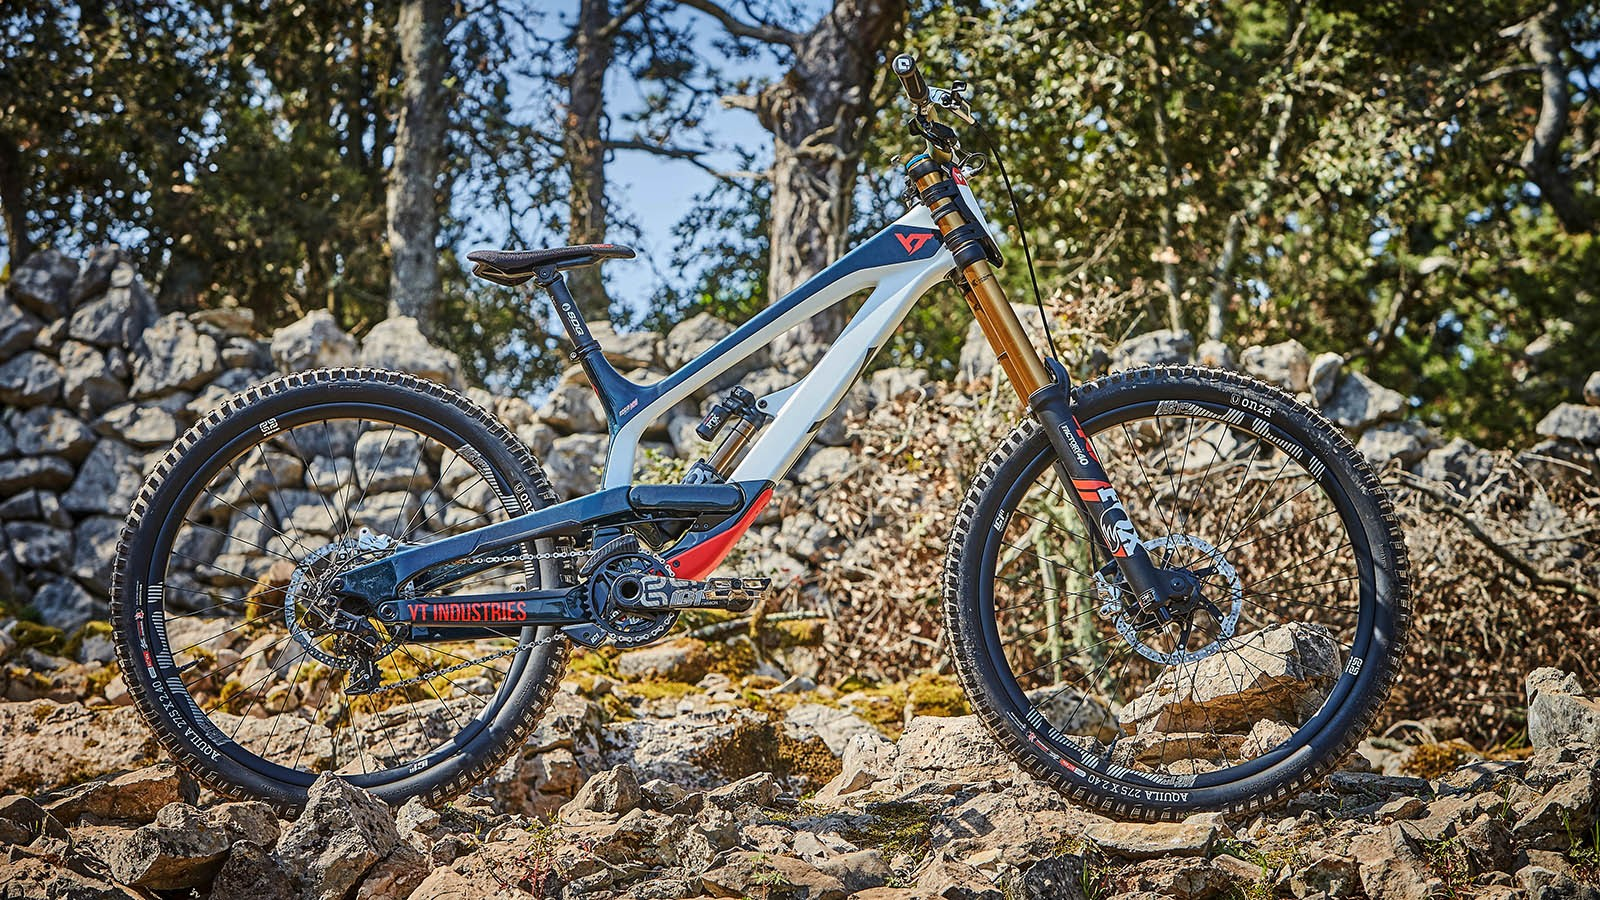 This is the CF Pro Race MOB edition of the new Tues. While the standard CF Pro Race uses the same parts, the Mob Edition gets this rather slick paint job